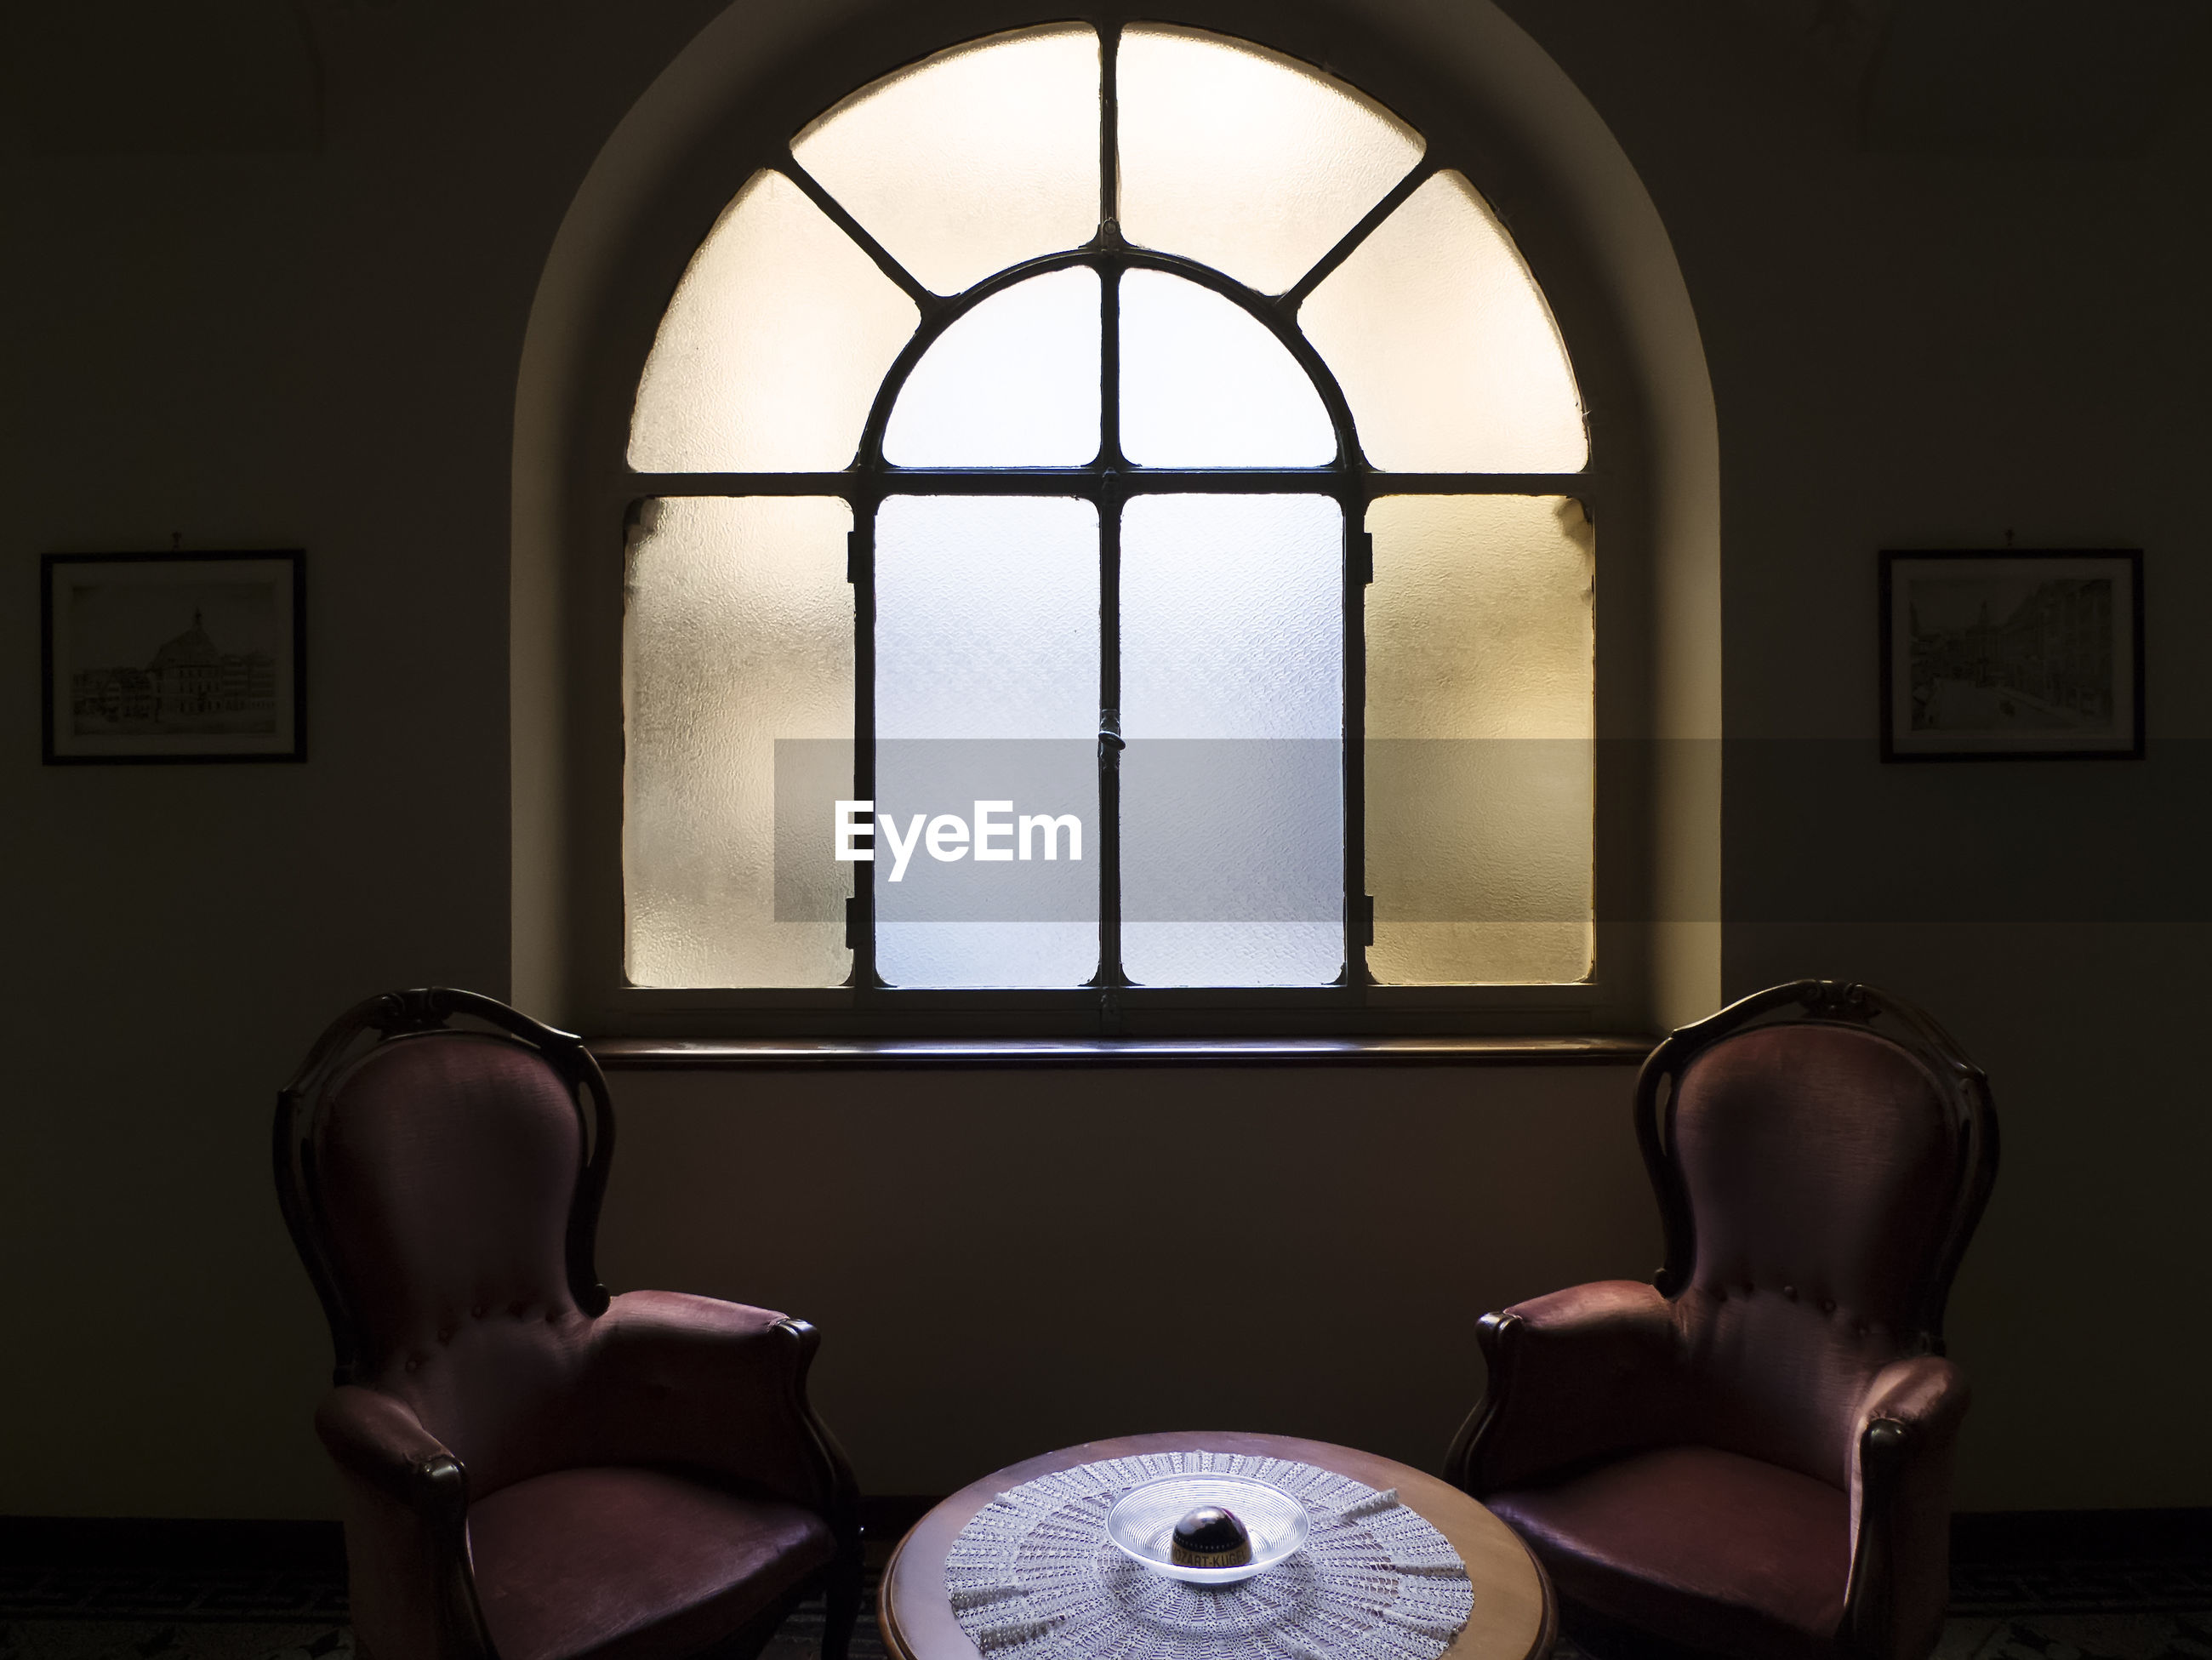 EMPTY CHAIR AND TABLE IN WINDOW